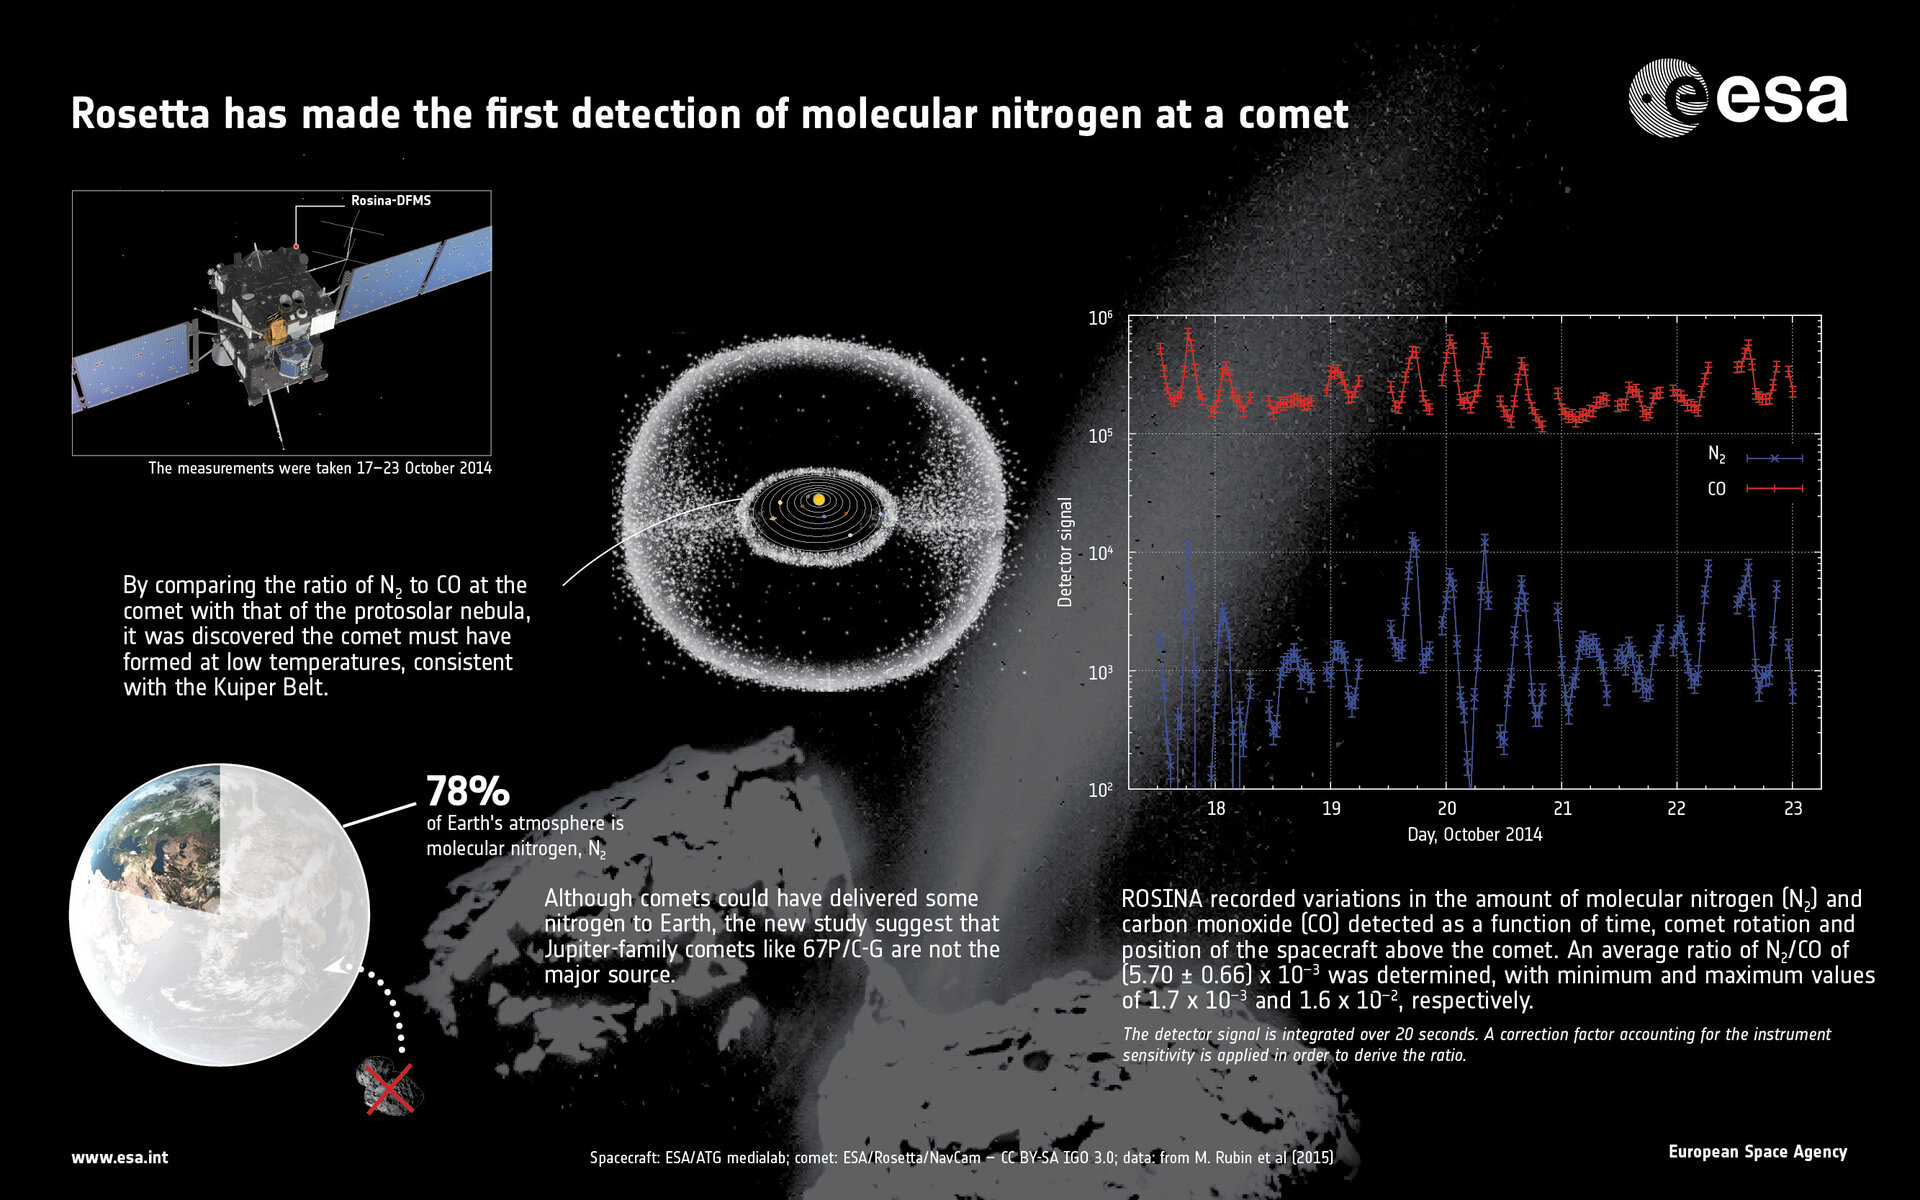 First detection of molecular nitrogen at a comet